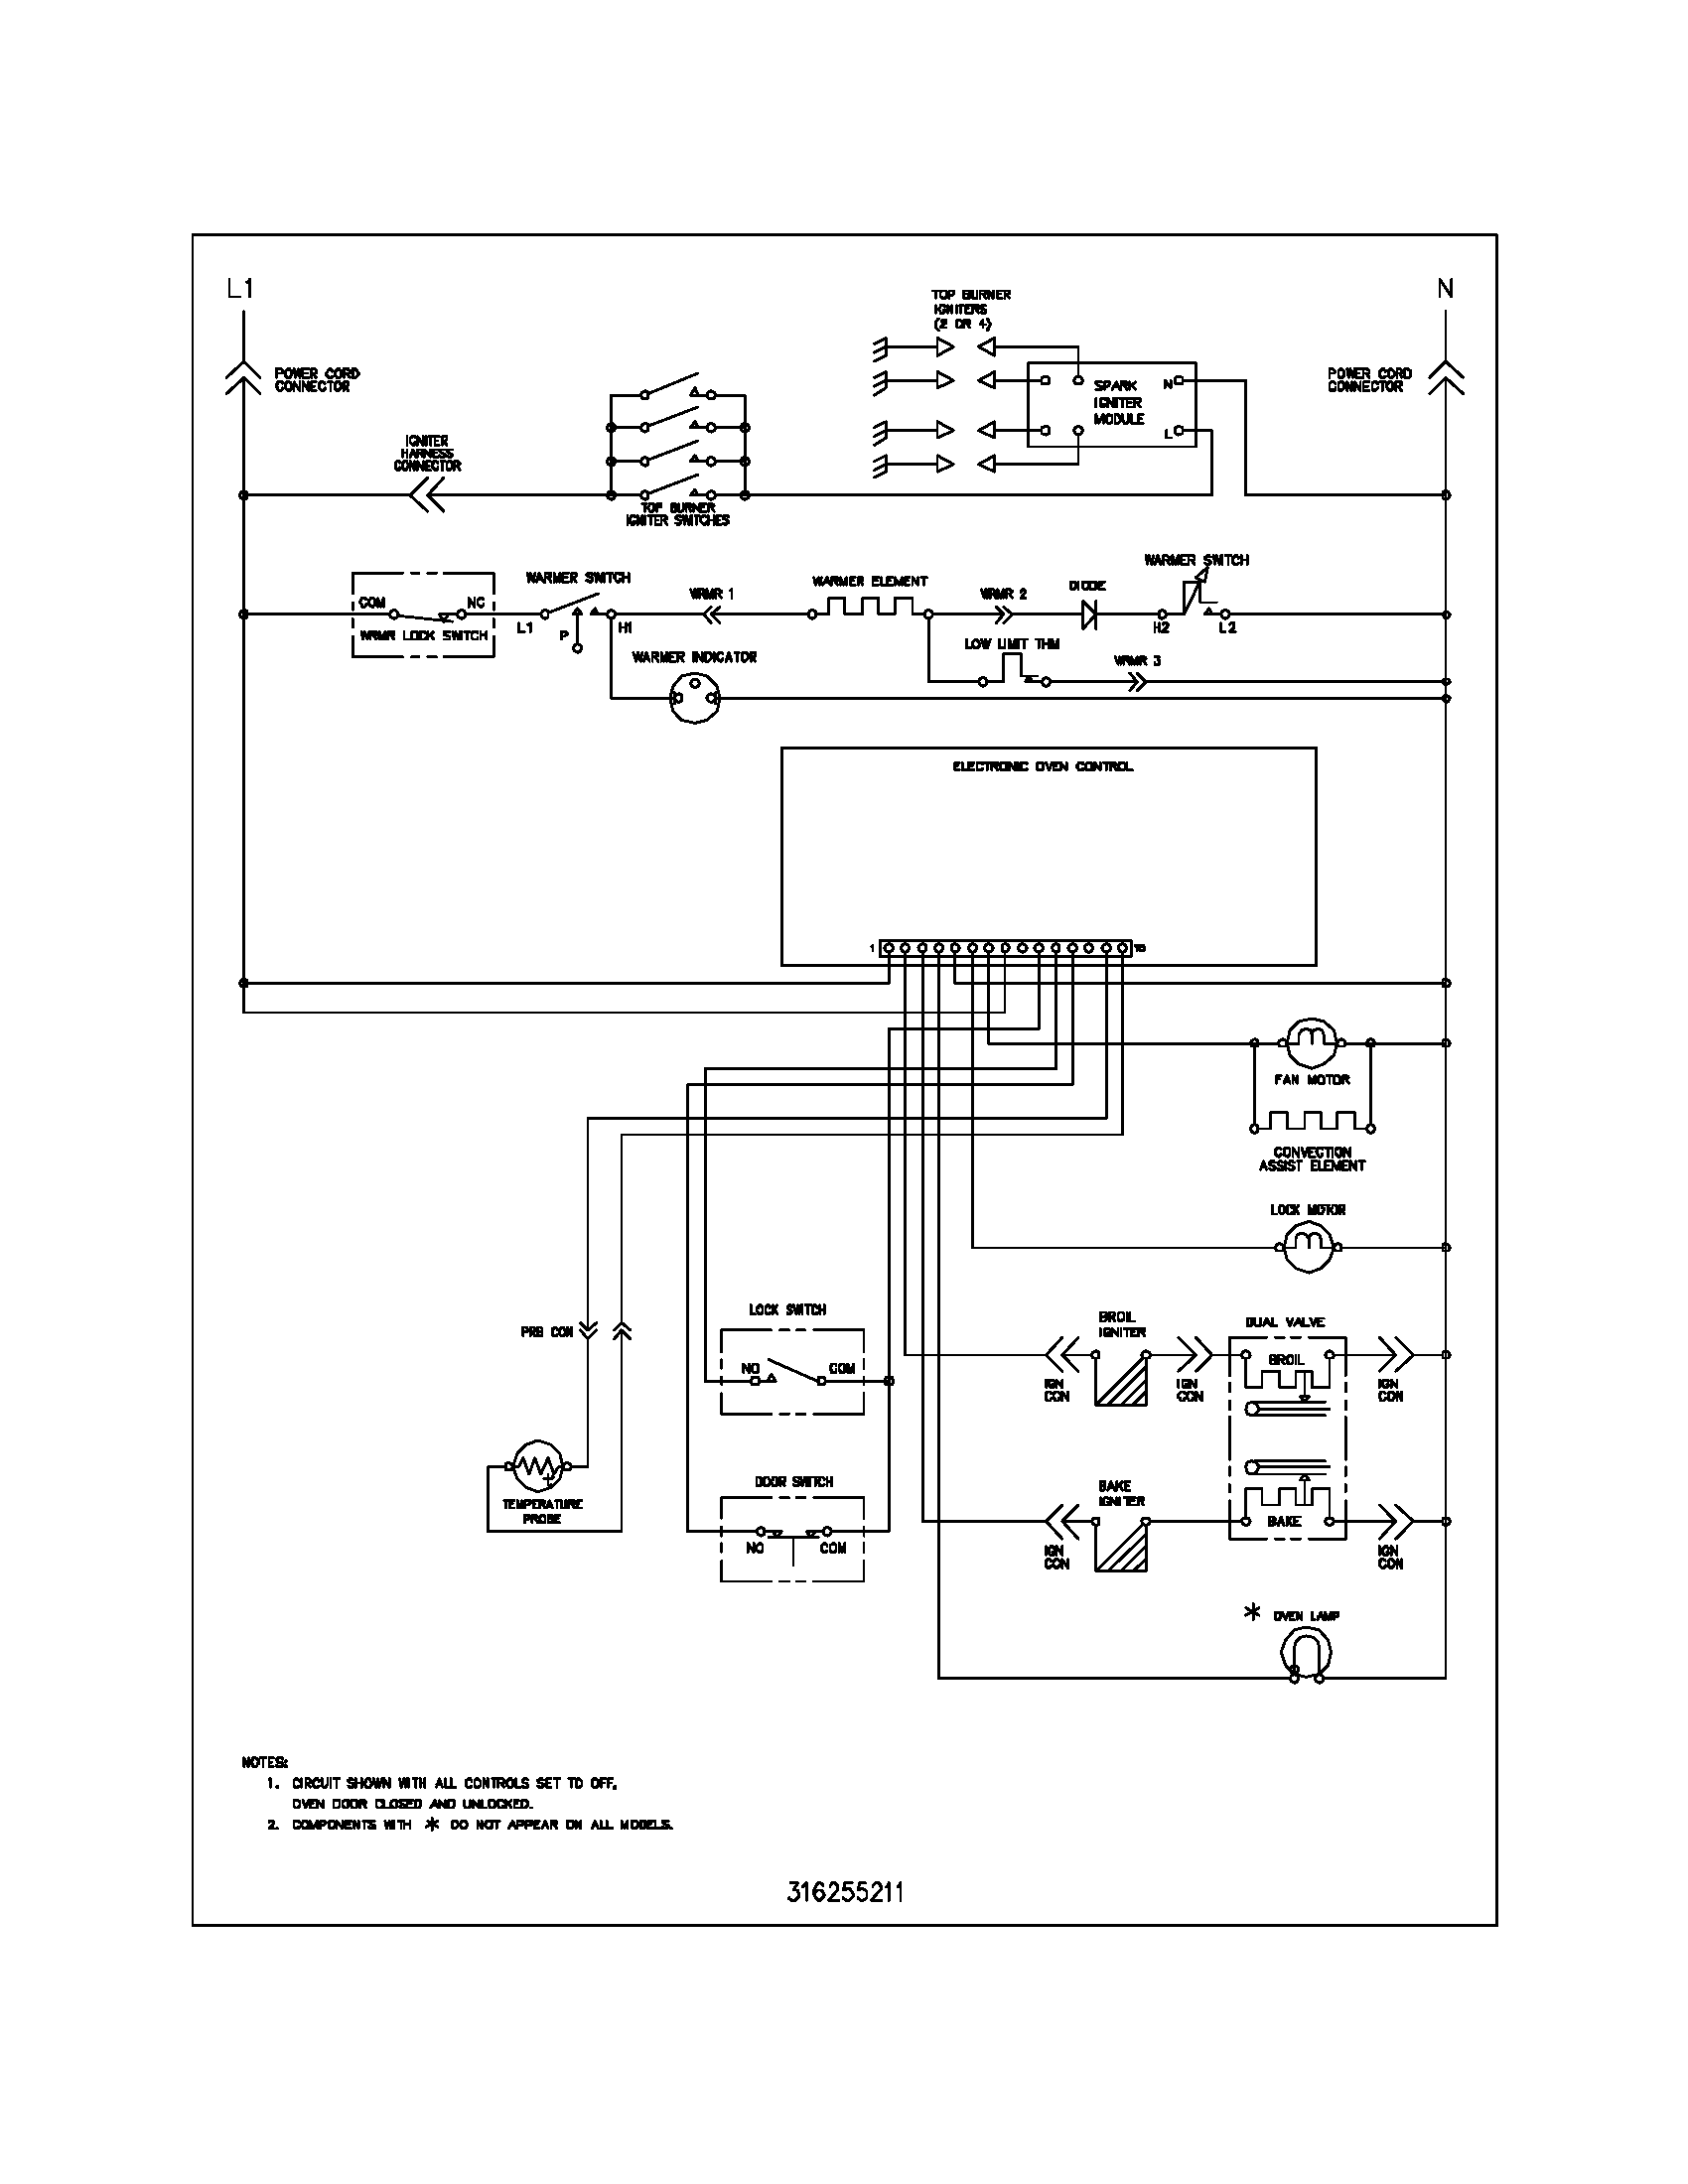 wiring schematic parts frigidaire stove wiring diagram frigidaire washer wiring diagram GE Range Hood Jvx3240 Wiring-Diagram at alyssarenee.co